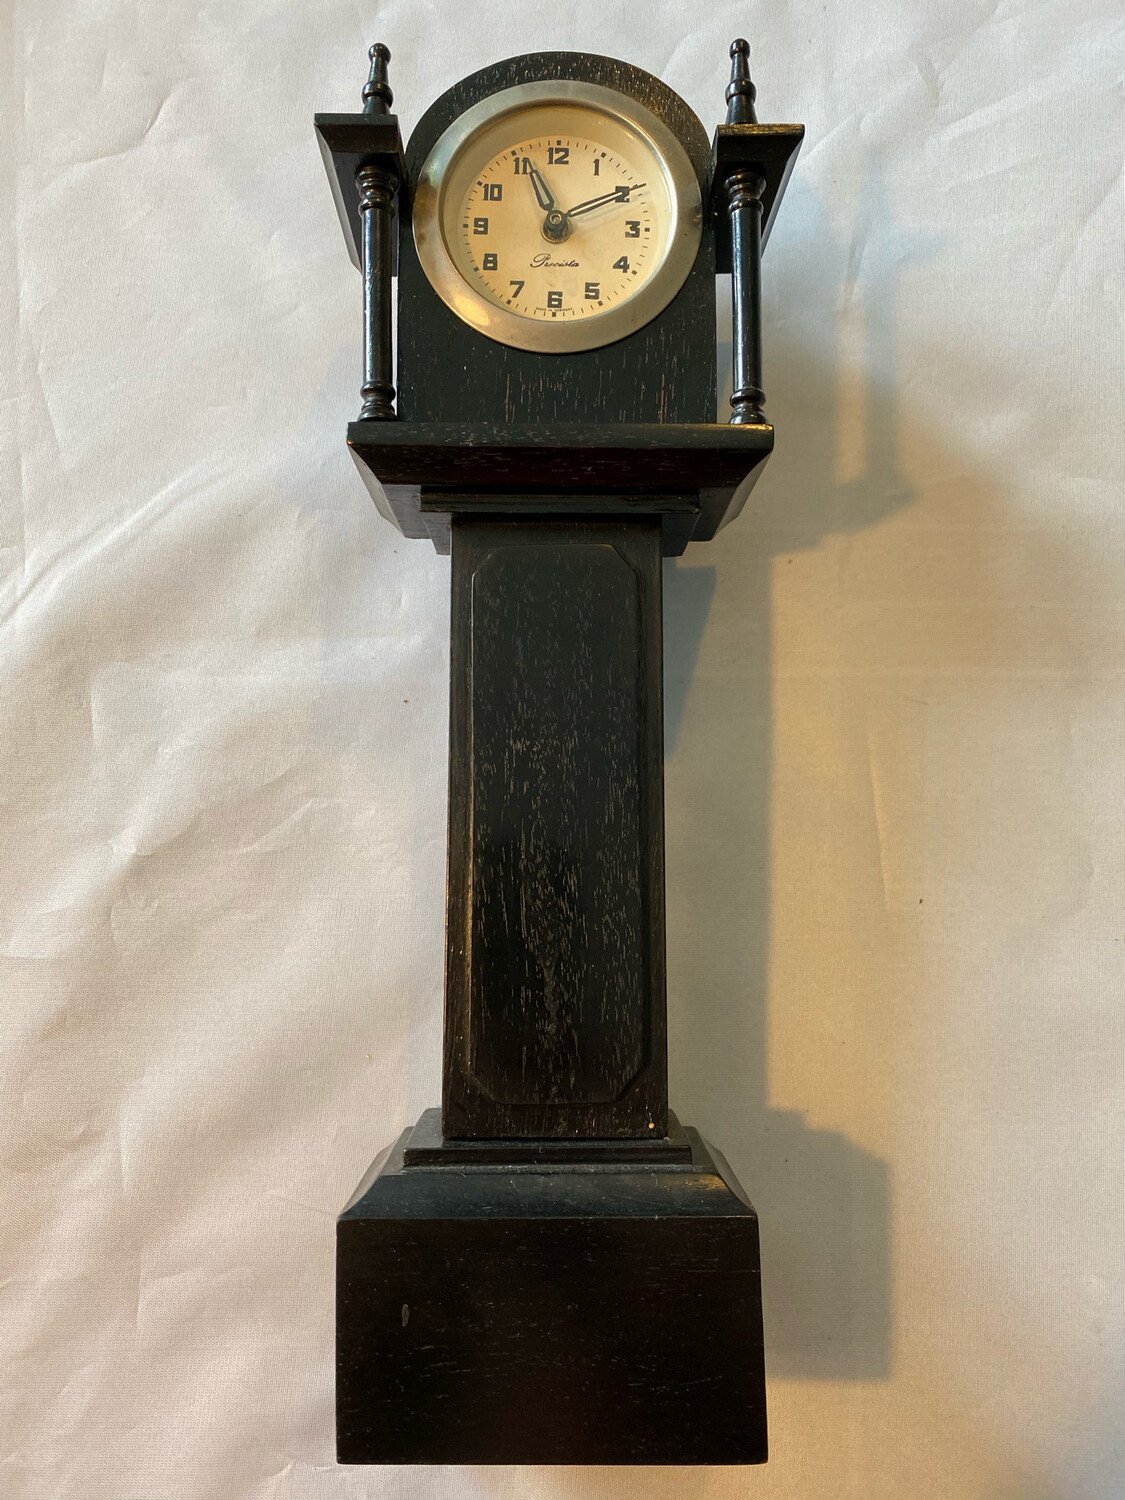 Mantle clock in Grandfather style - German, possibly 1930's